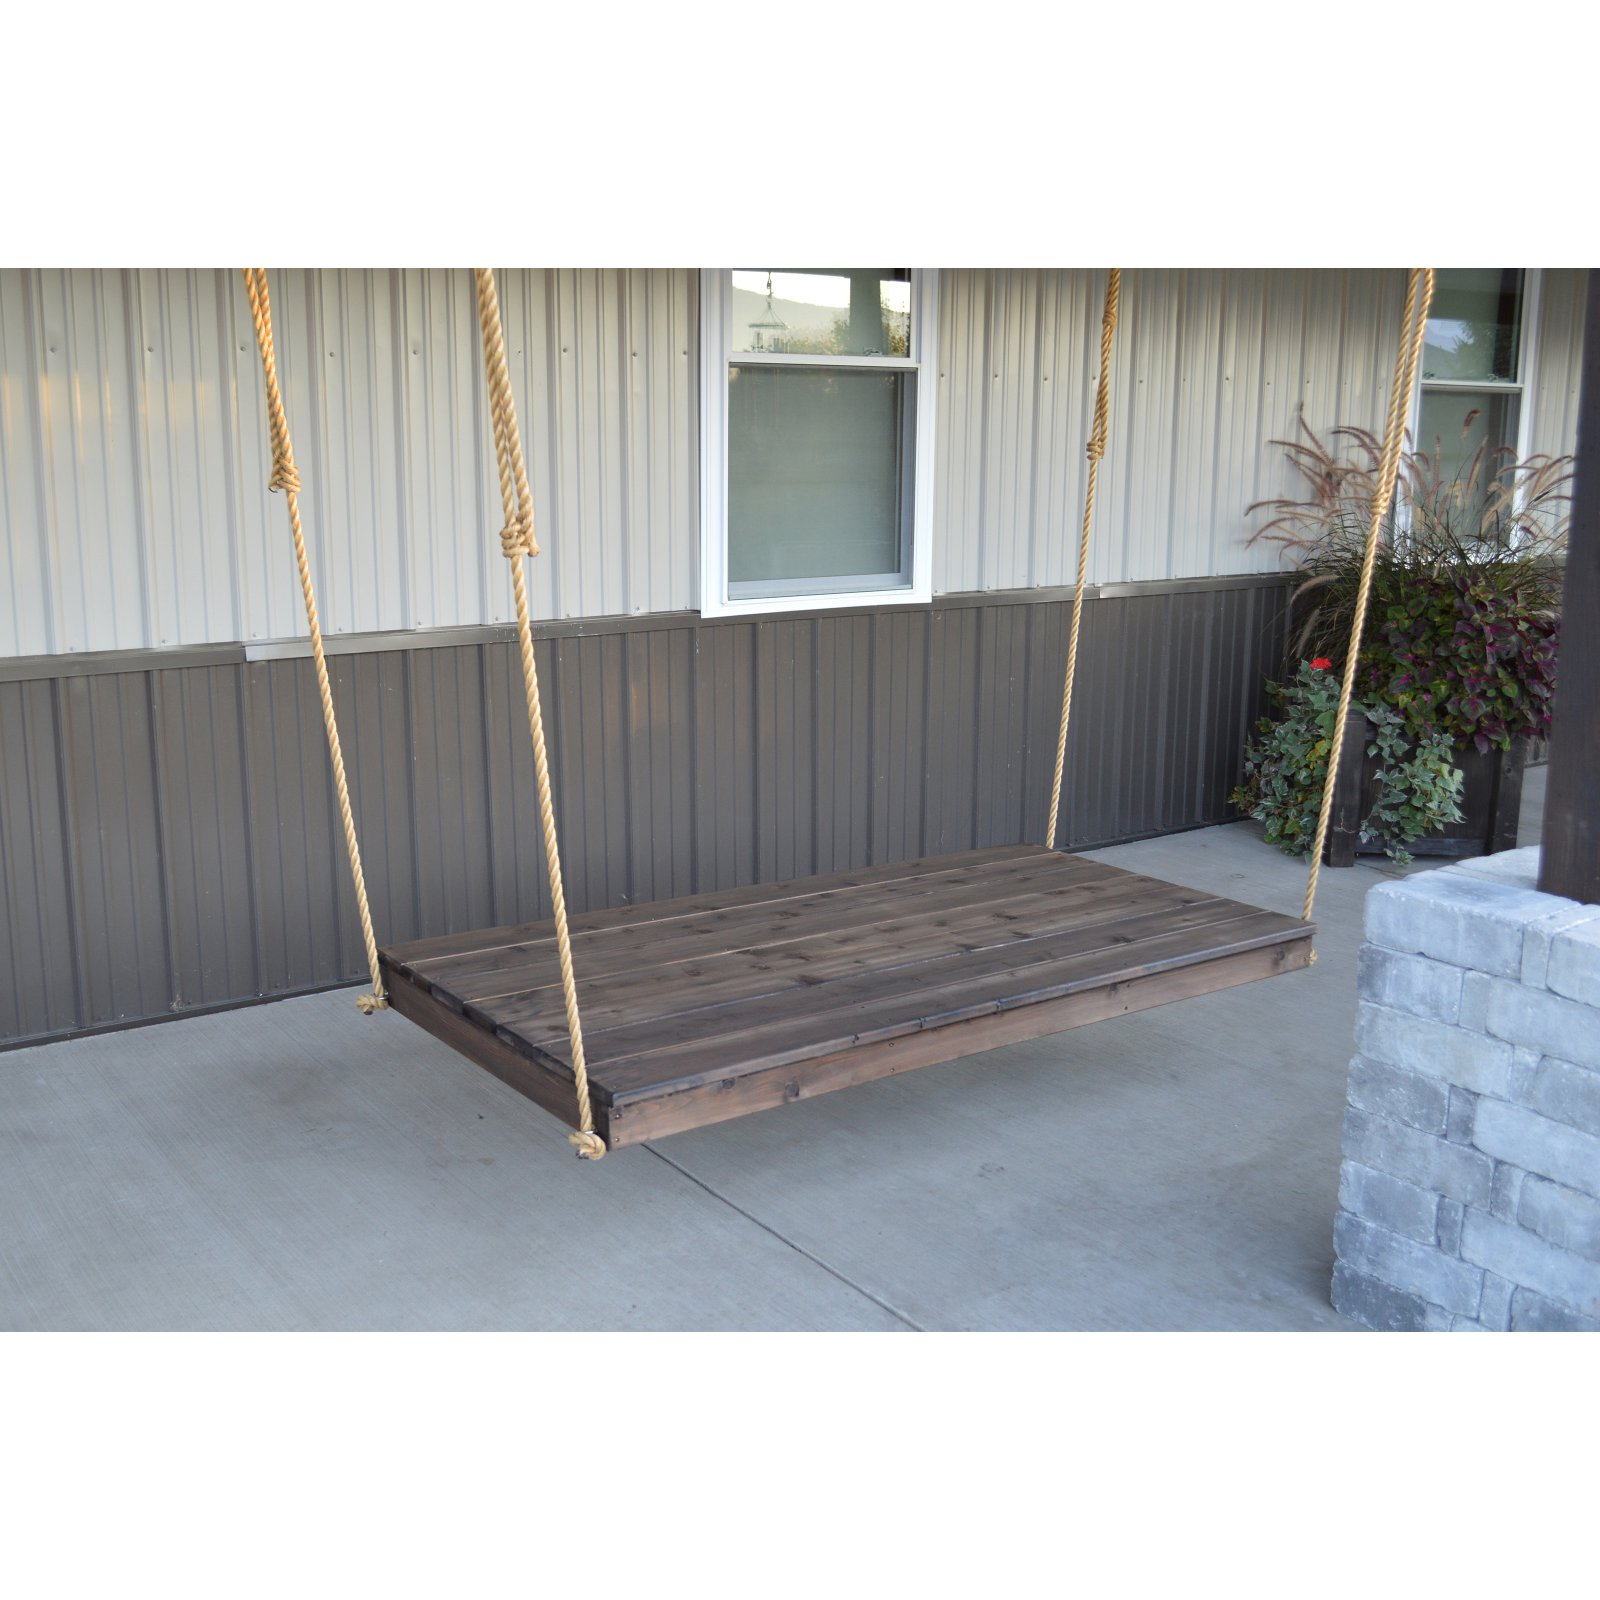 A & L Furniture Western Red Cedar Newport 75 x 38 in. Backless Swing Bed with Hanging Rope